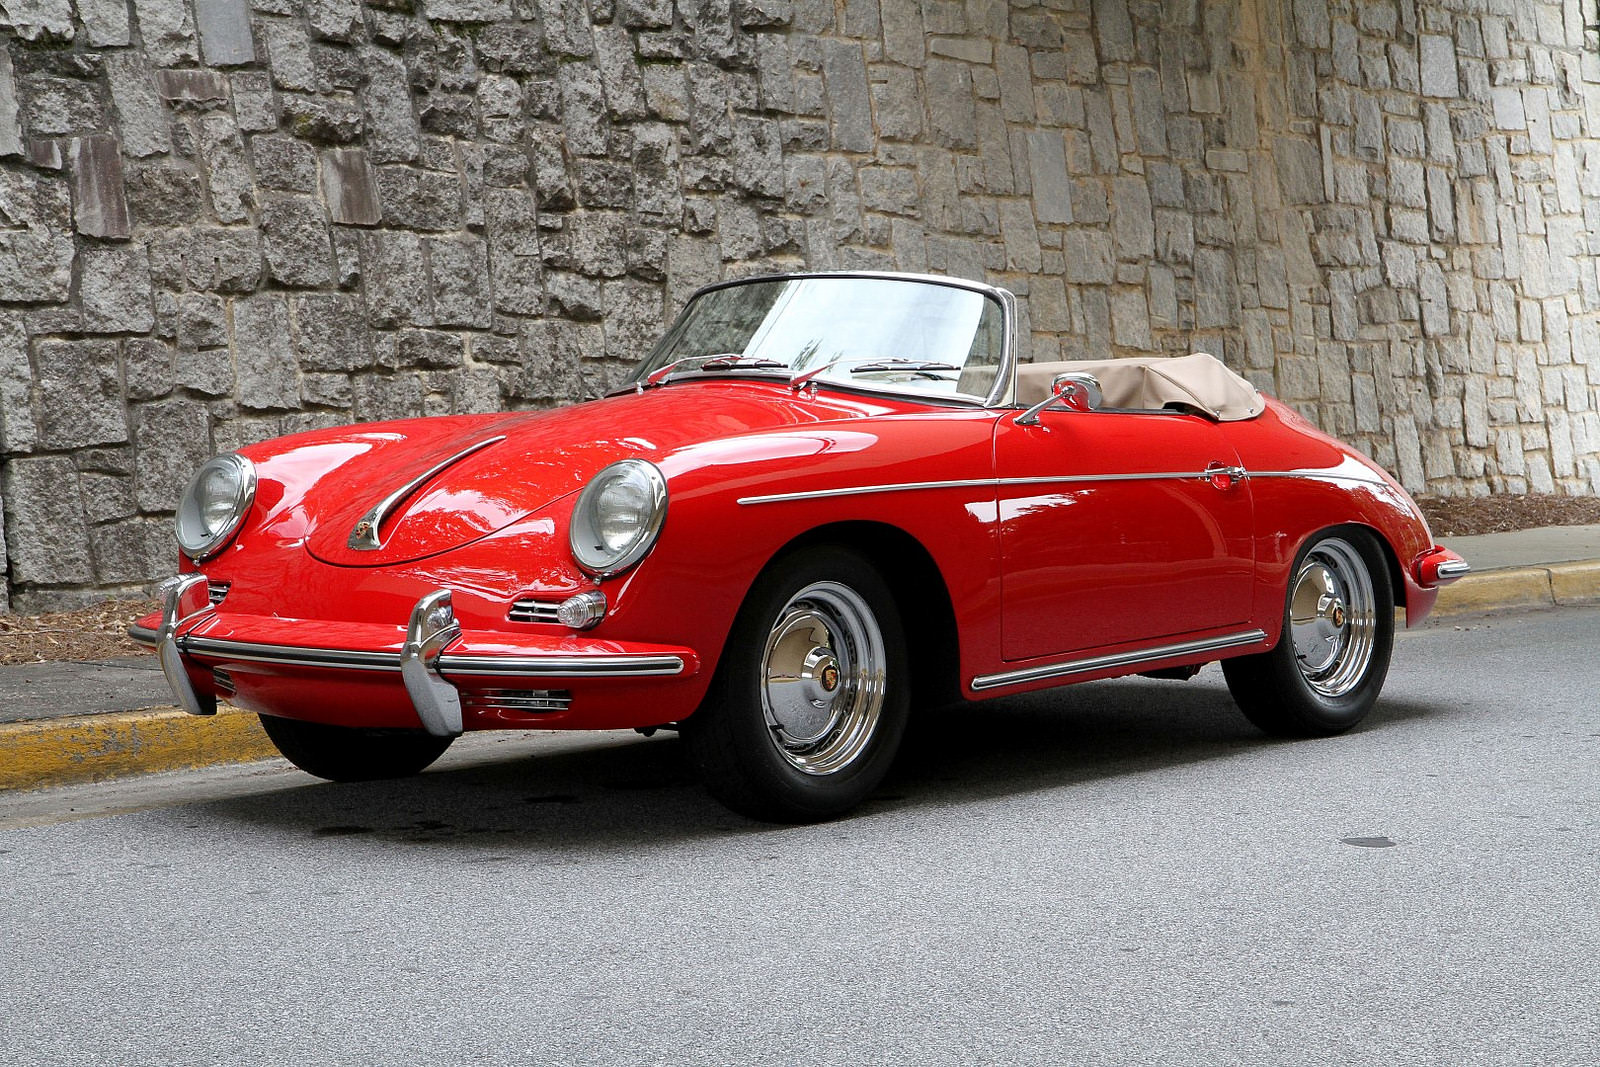 Porsche 356 For Sale >> 1960 Porsche 356 Roadster